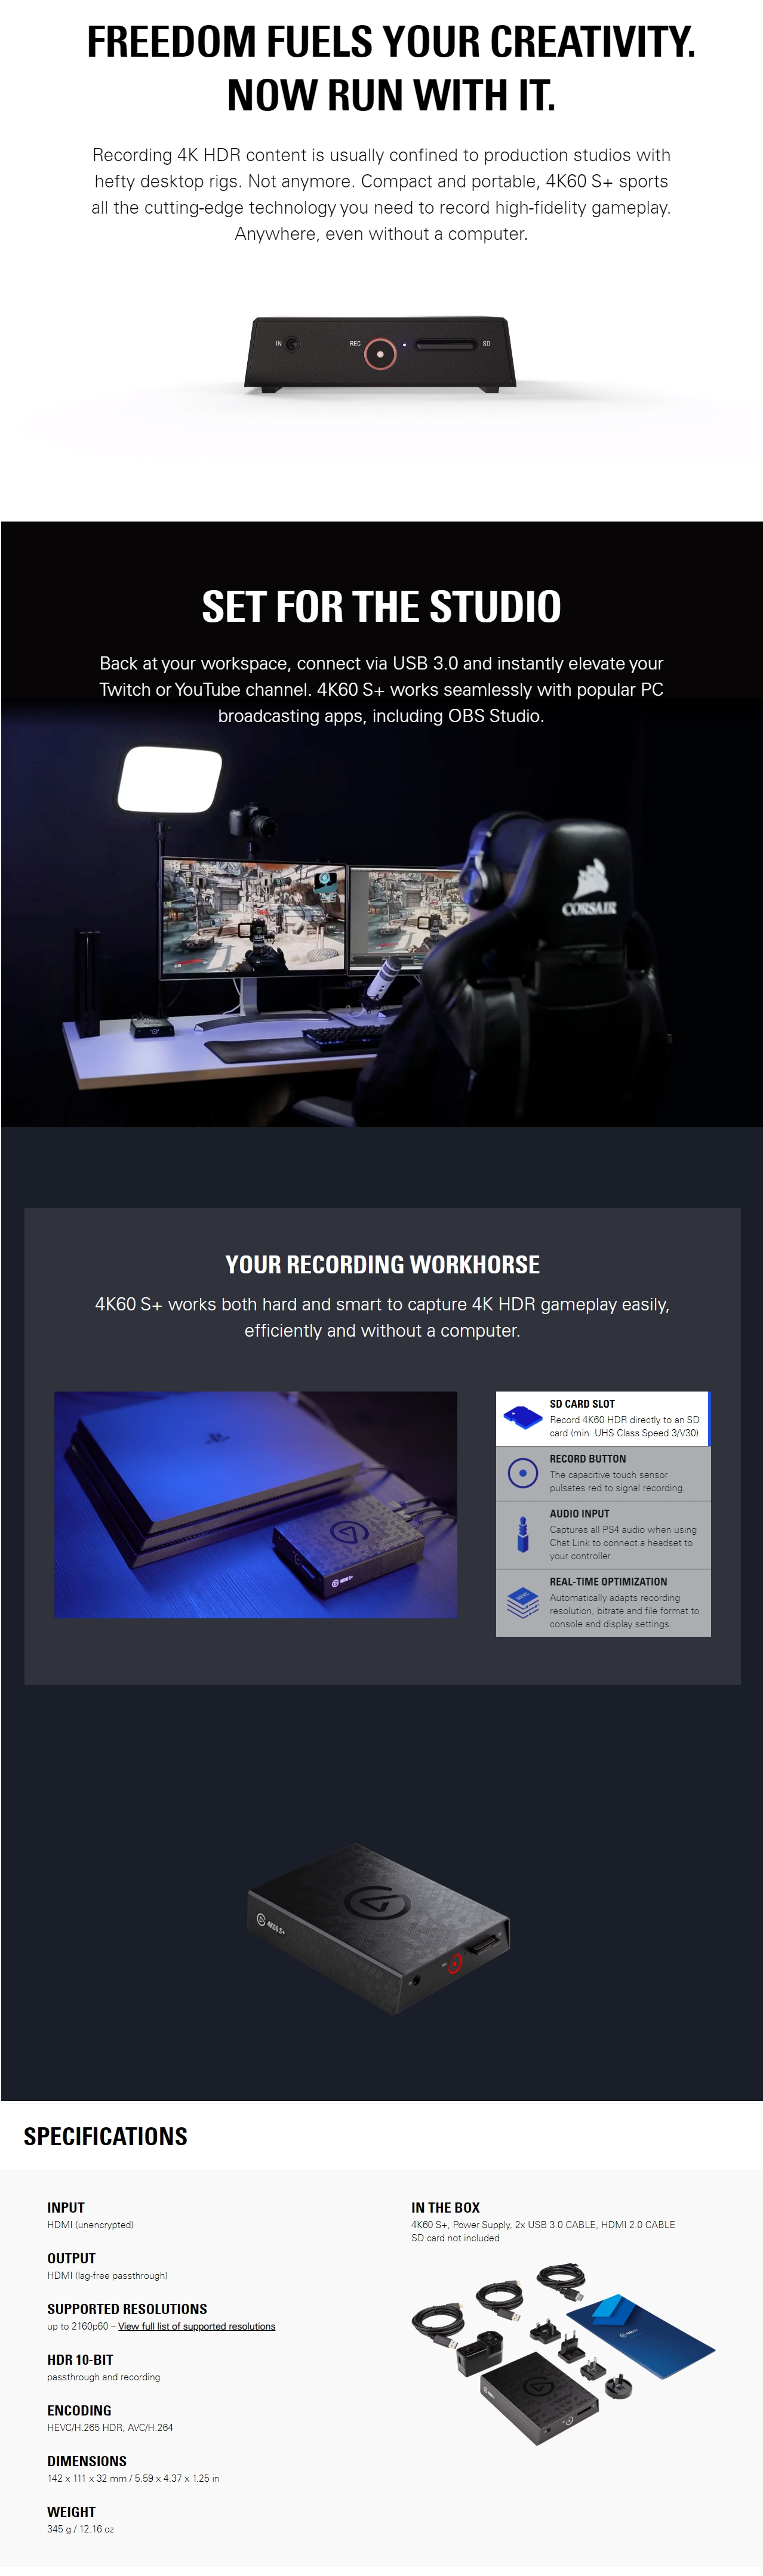 A large marketing image providing additional information about the product Elgato Game Capture 4K60 S+ - Additional alt info not provided